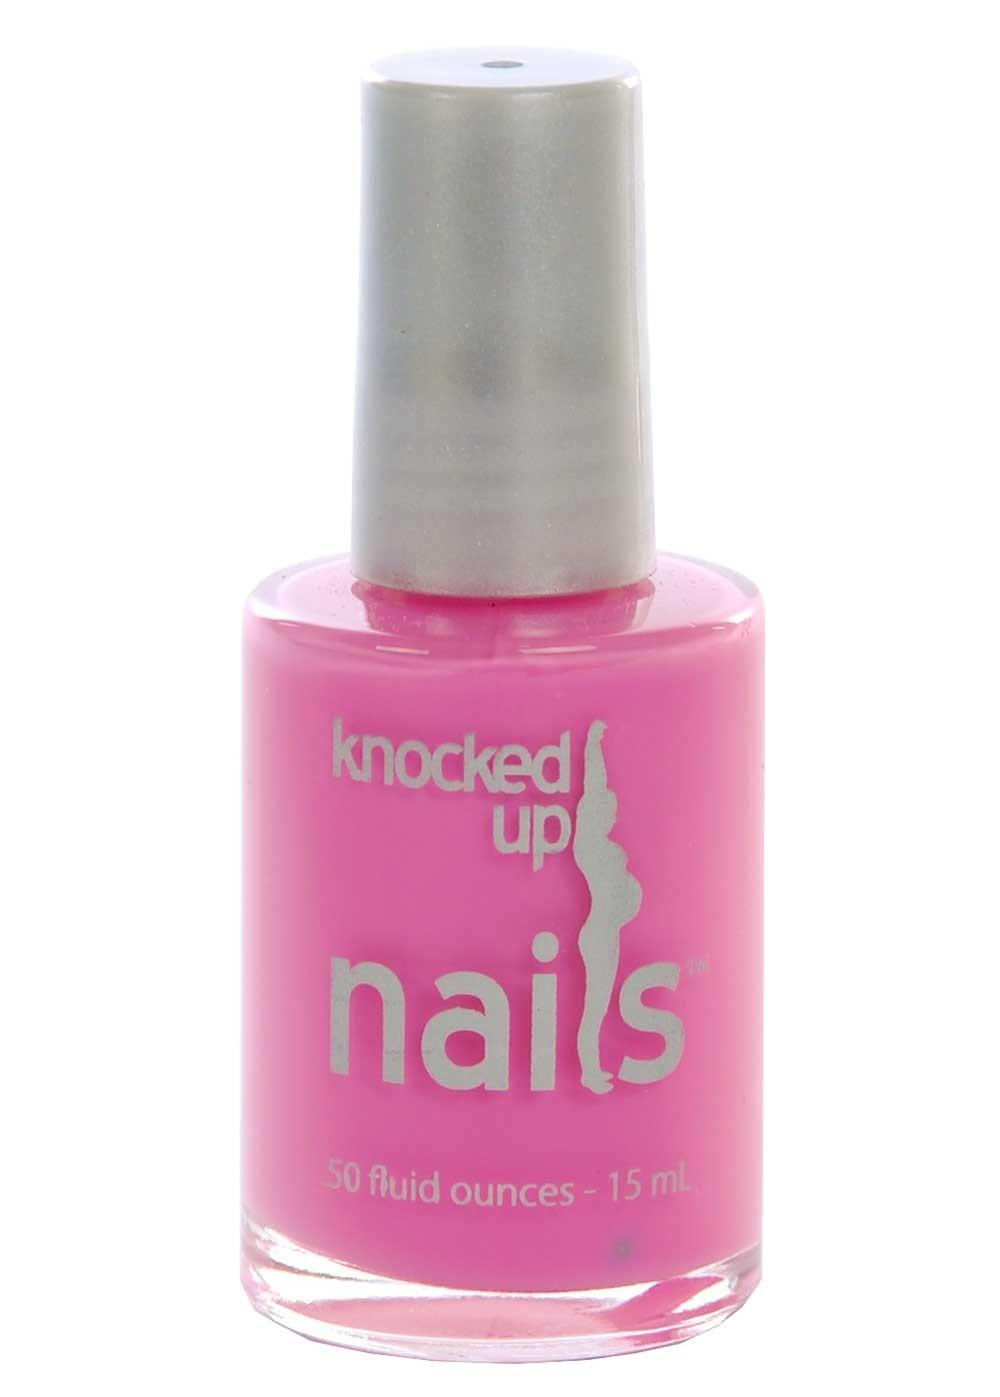 Knocked Up Nails - Pregnancy safe nail polish - 10% OFF Baby Blossom ...